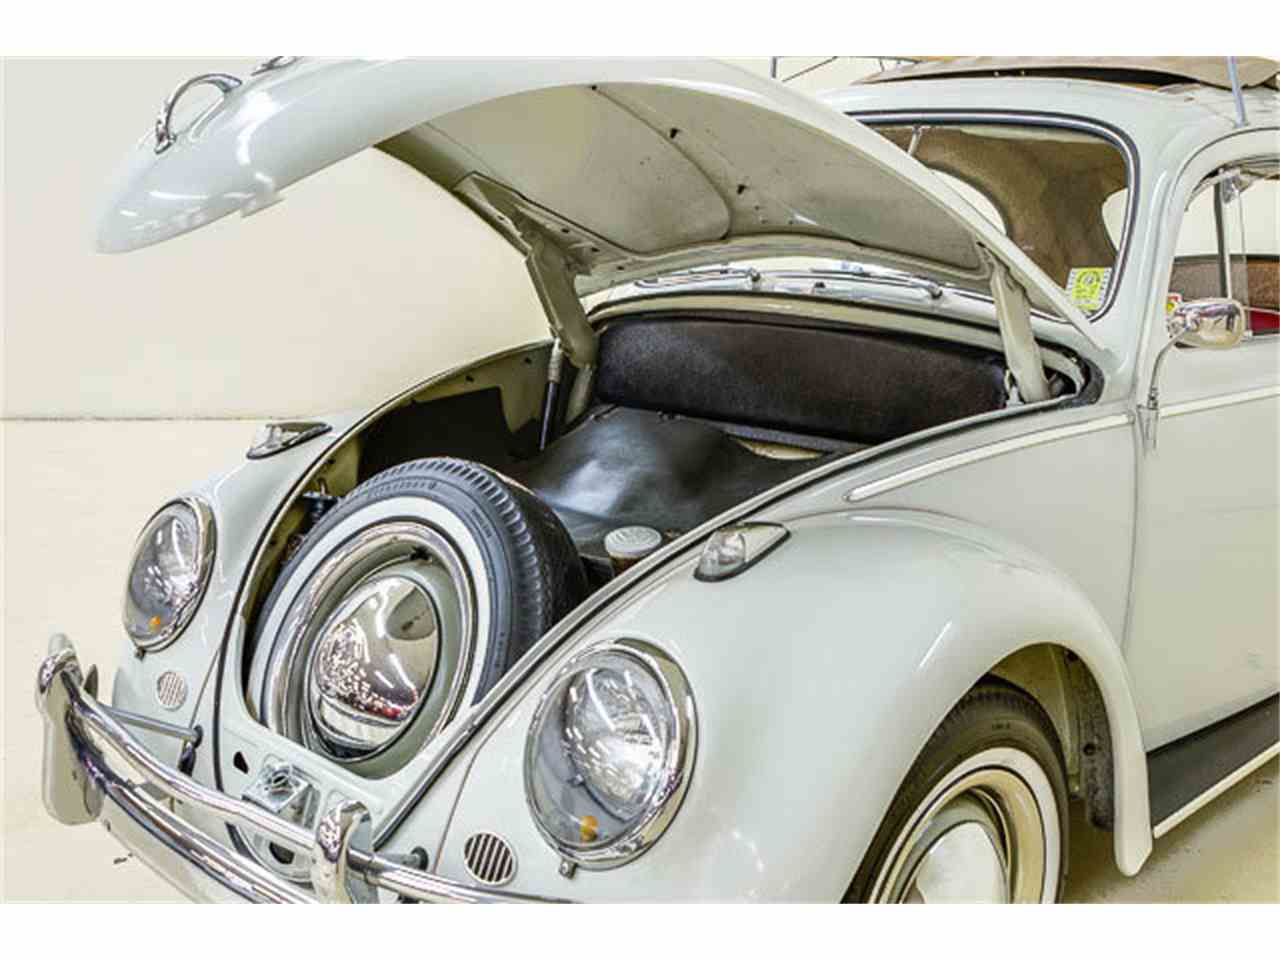 cc picture volkswagen large concord c view in std sale com autobarn of carolina classiccars located for listings beetle north